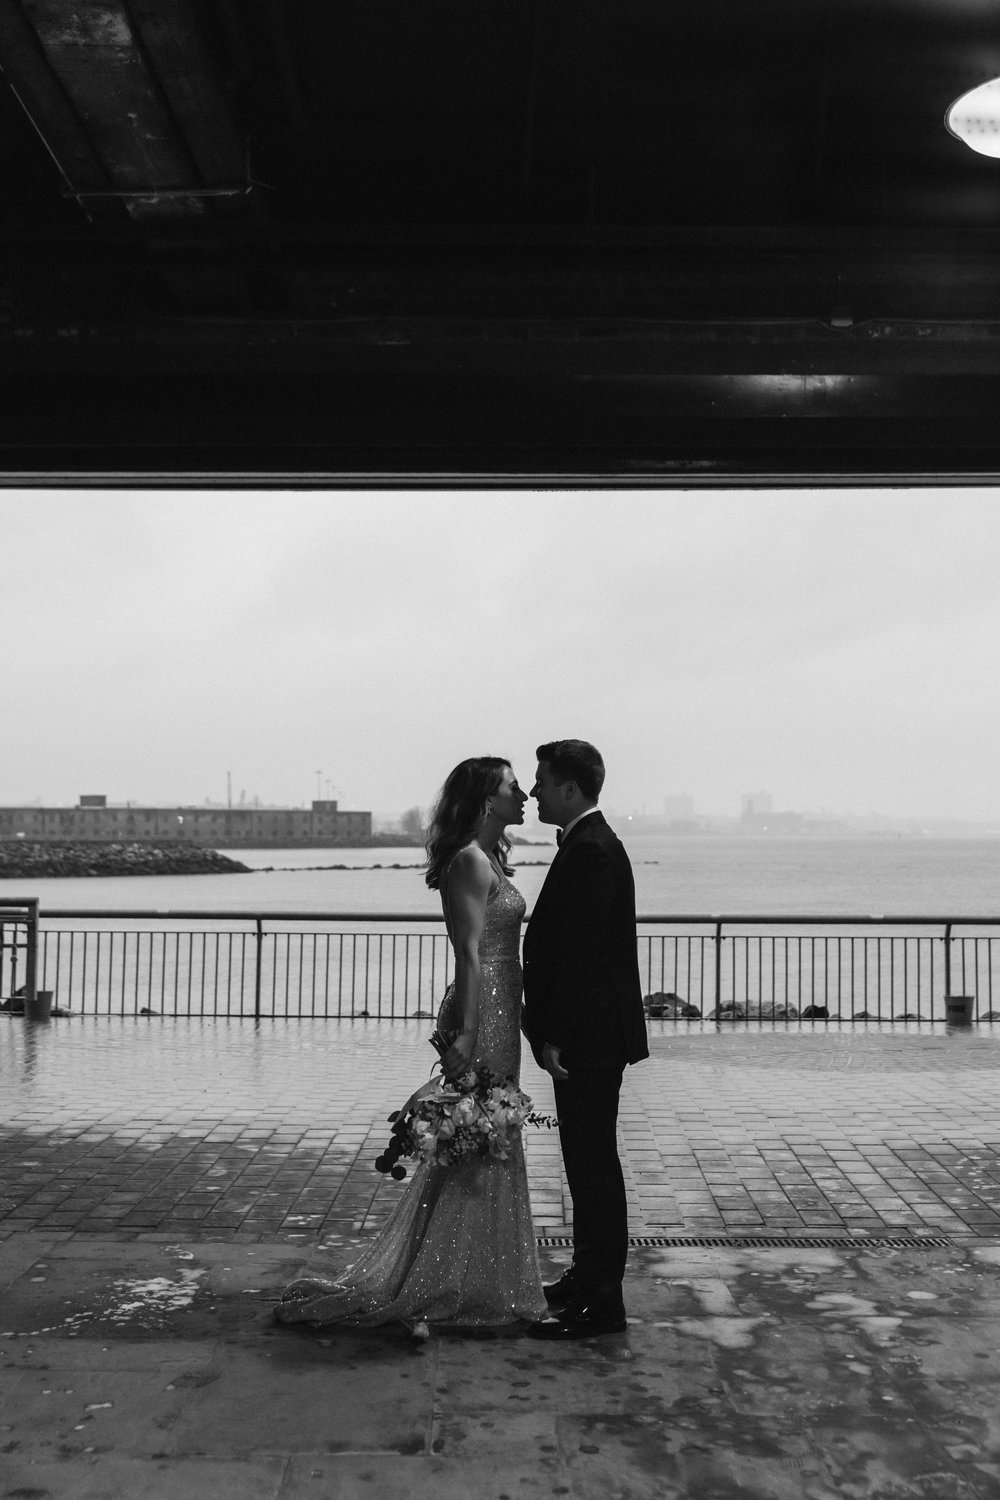 Hailleyhowardphotography_wedding_newyork_christinaandryan-2715.jpg